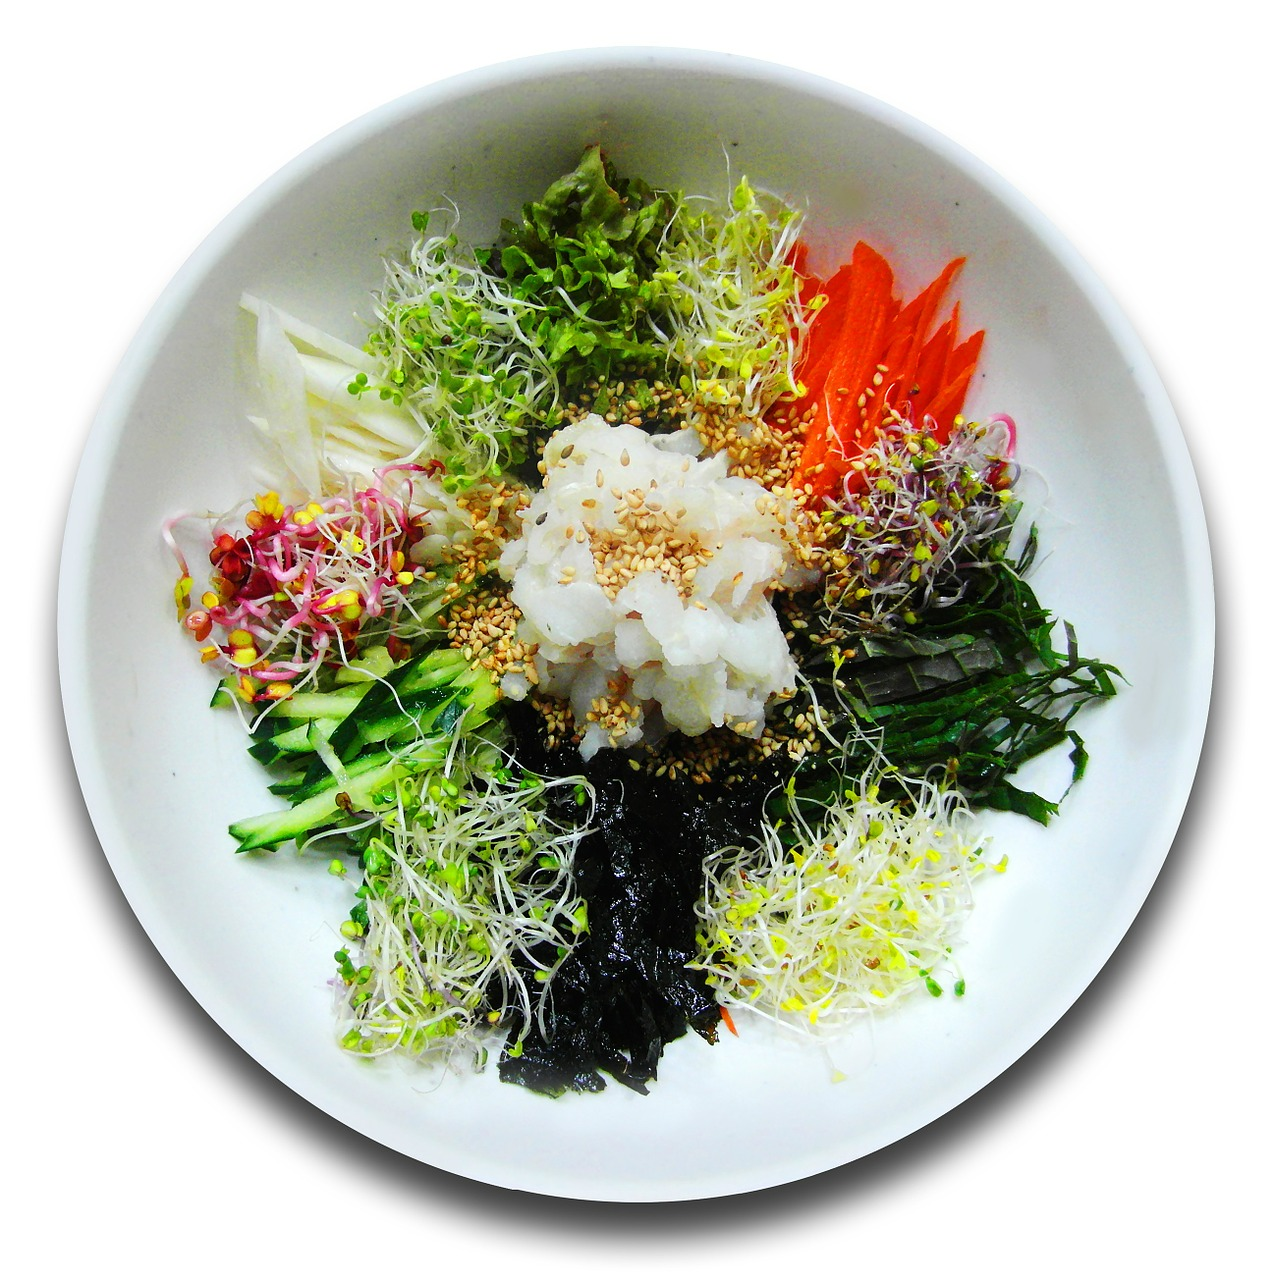 bibimbap bob gochujang free photo